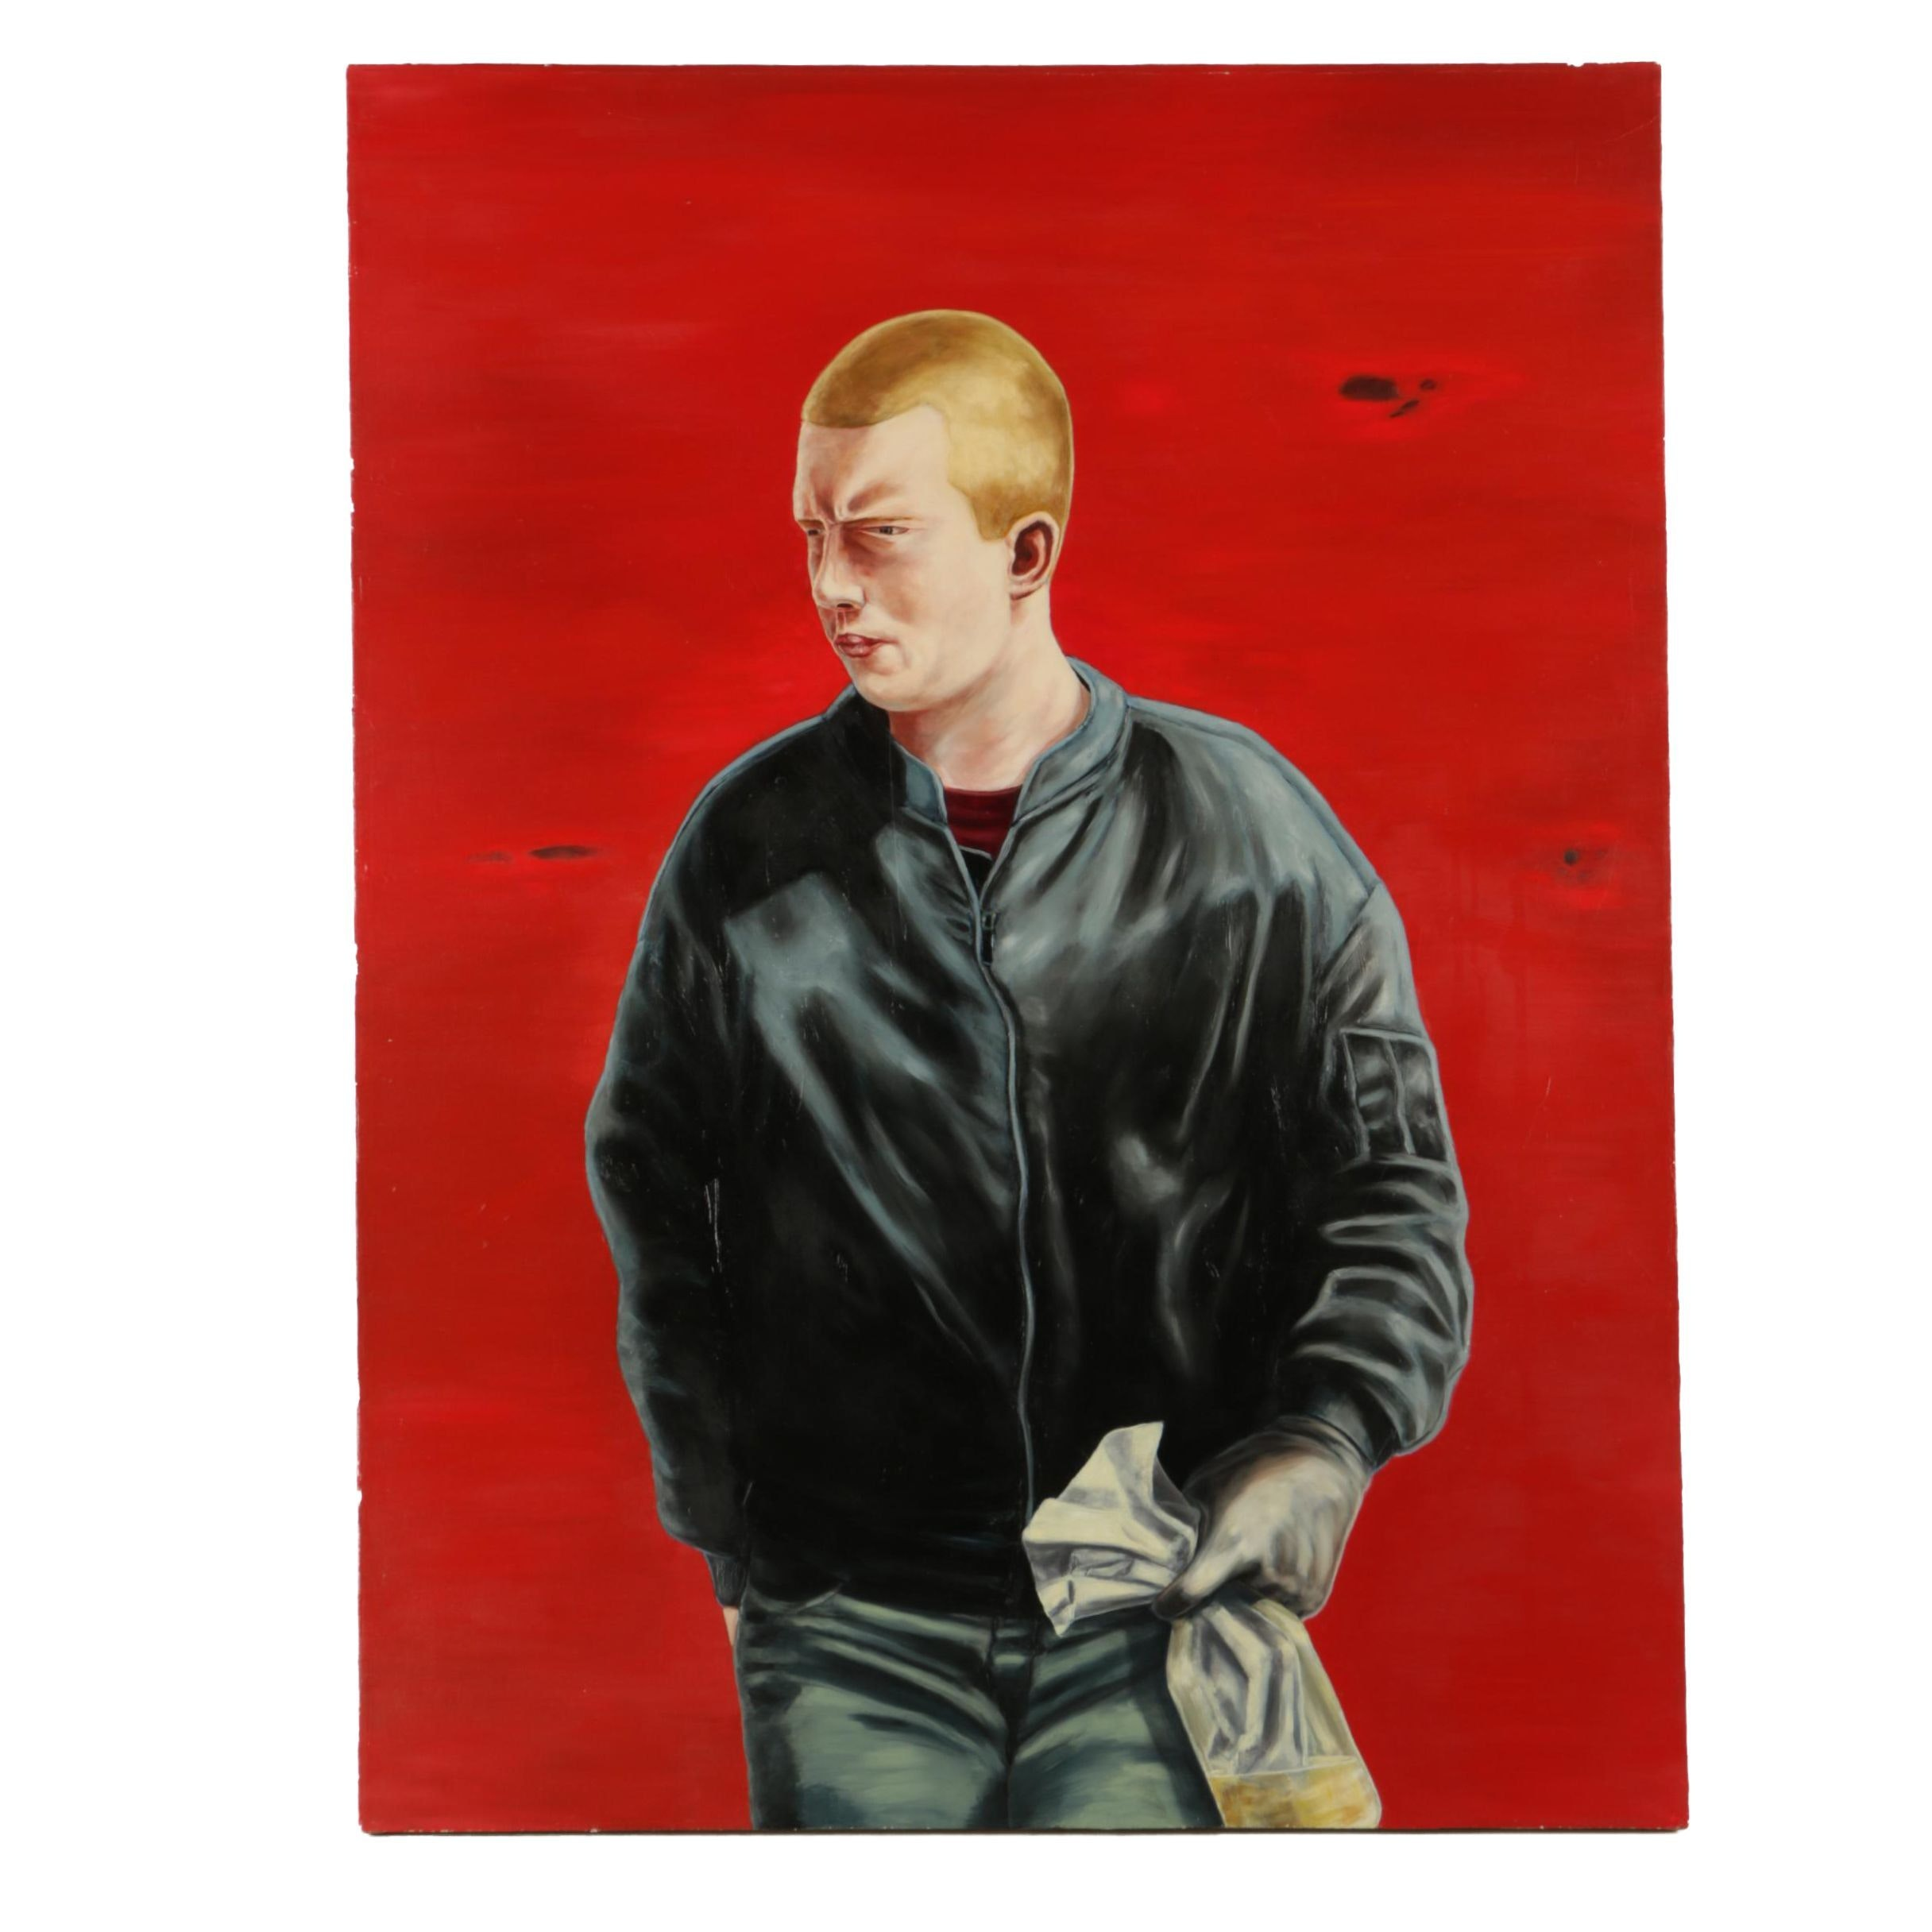 """Conor McGrady 1999 Oil Painting on Canvas """"Youth"""""""